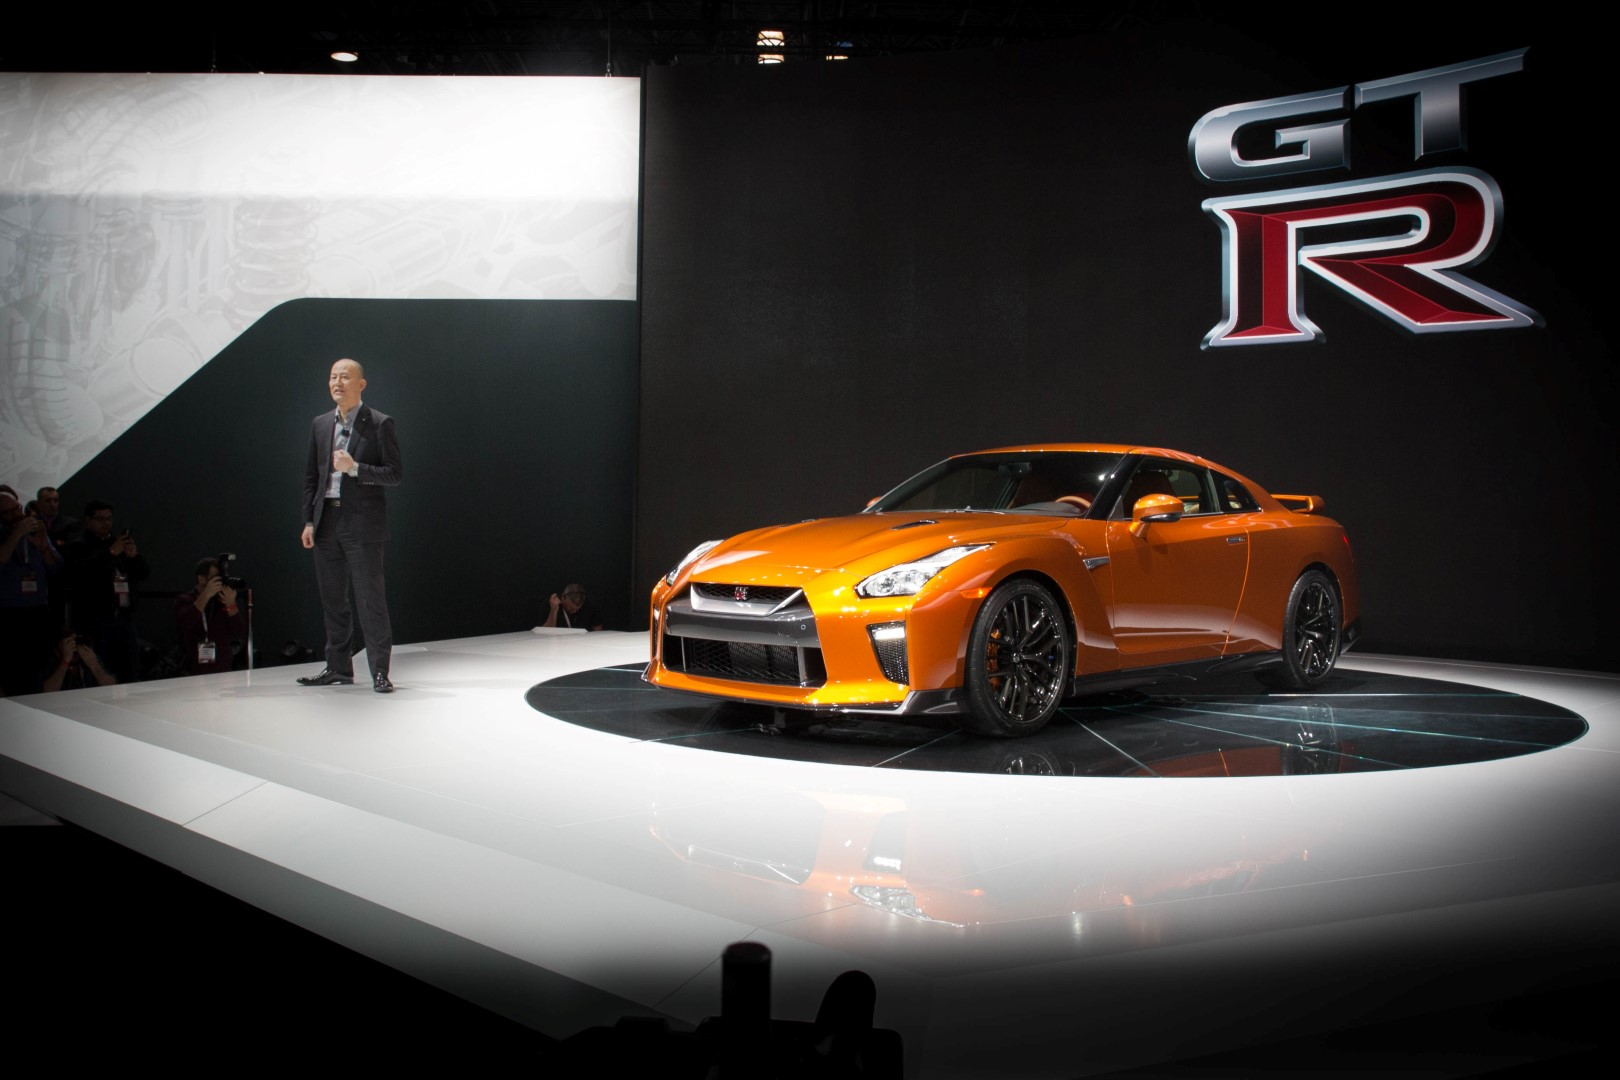 2017 Nissan GT-R makes world debut at NYIAS